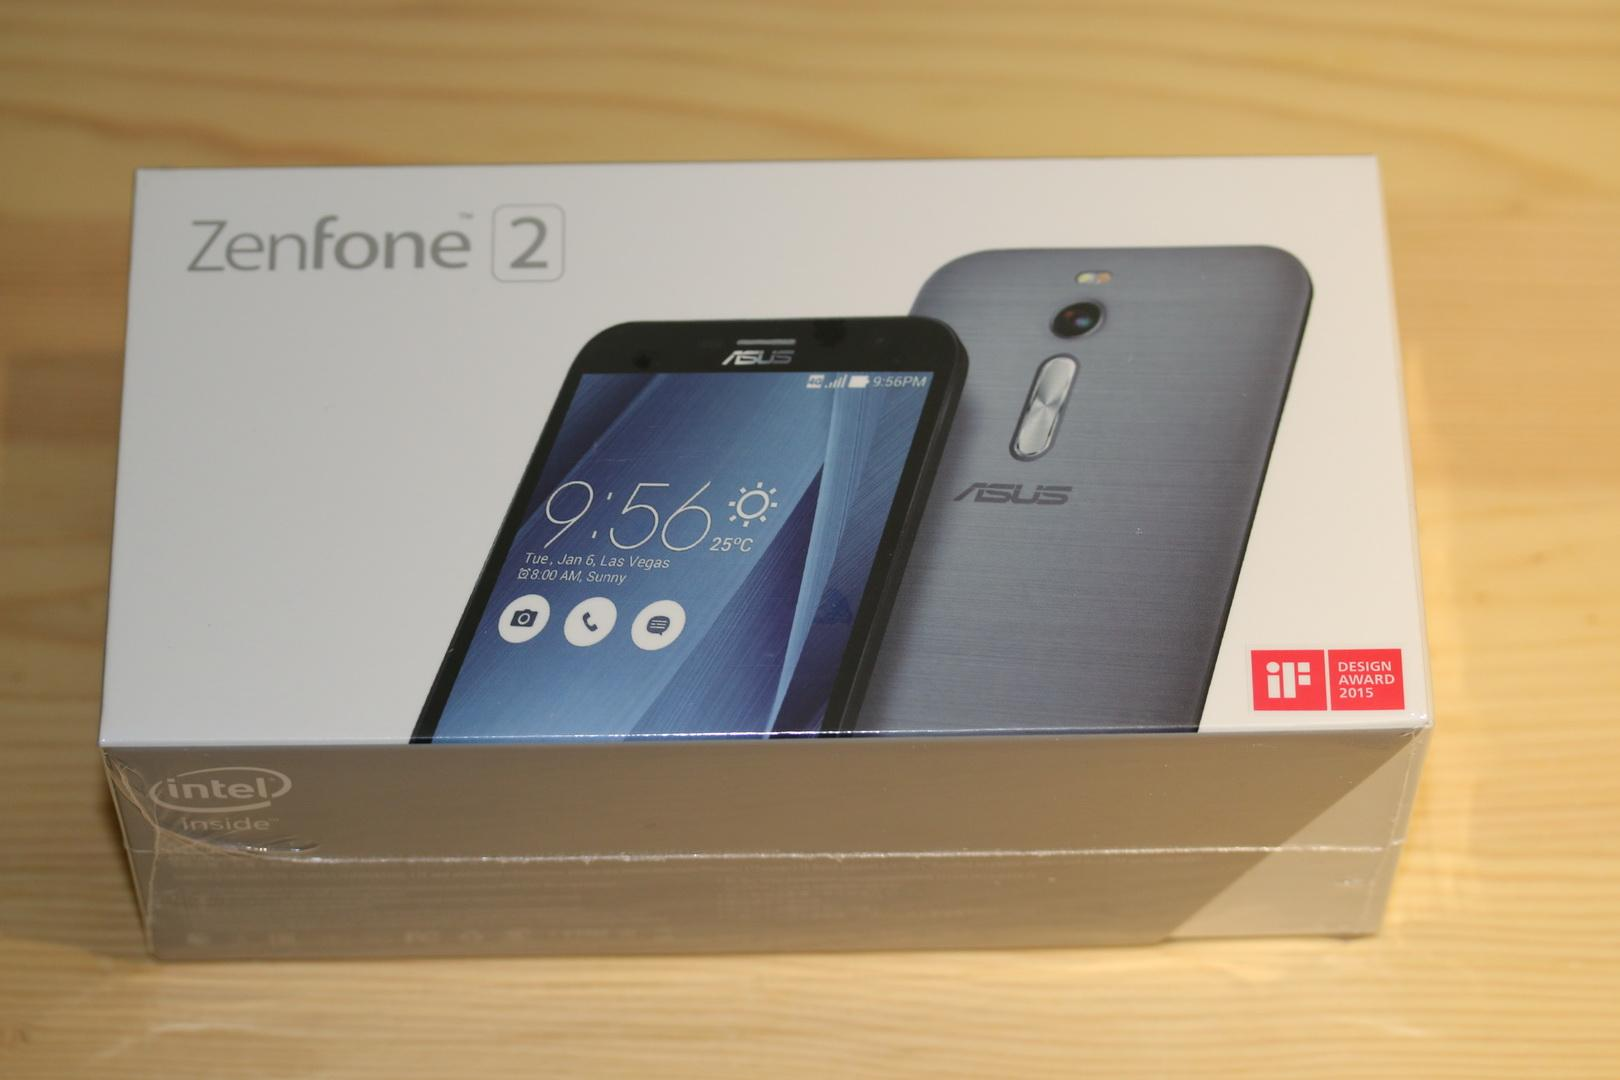 [開箱] 一機難求Zenfone2 ZE551ML 4GB-32GB入手開箱 - XFastest - 002.JPG